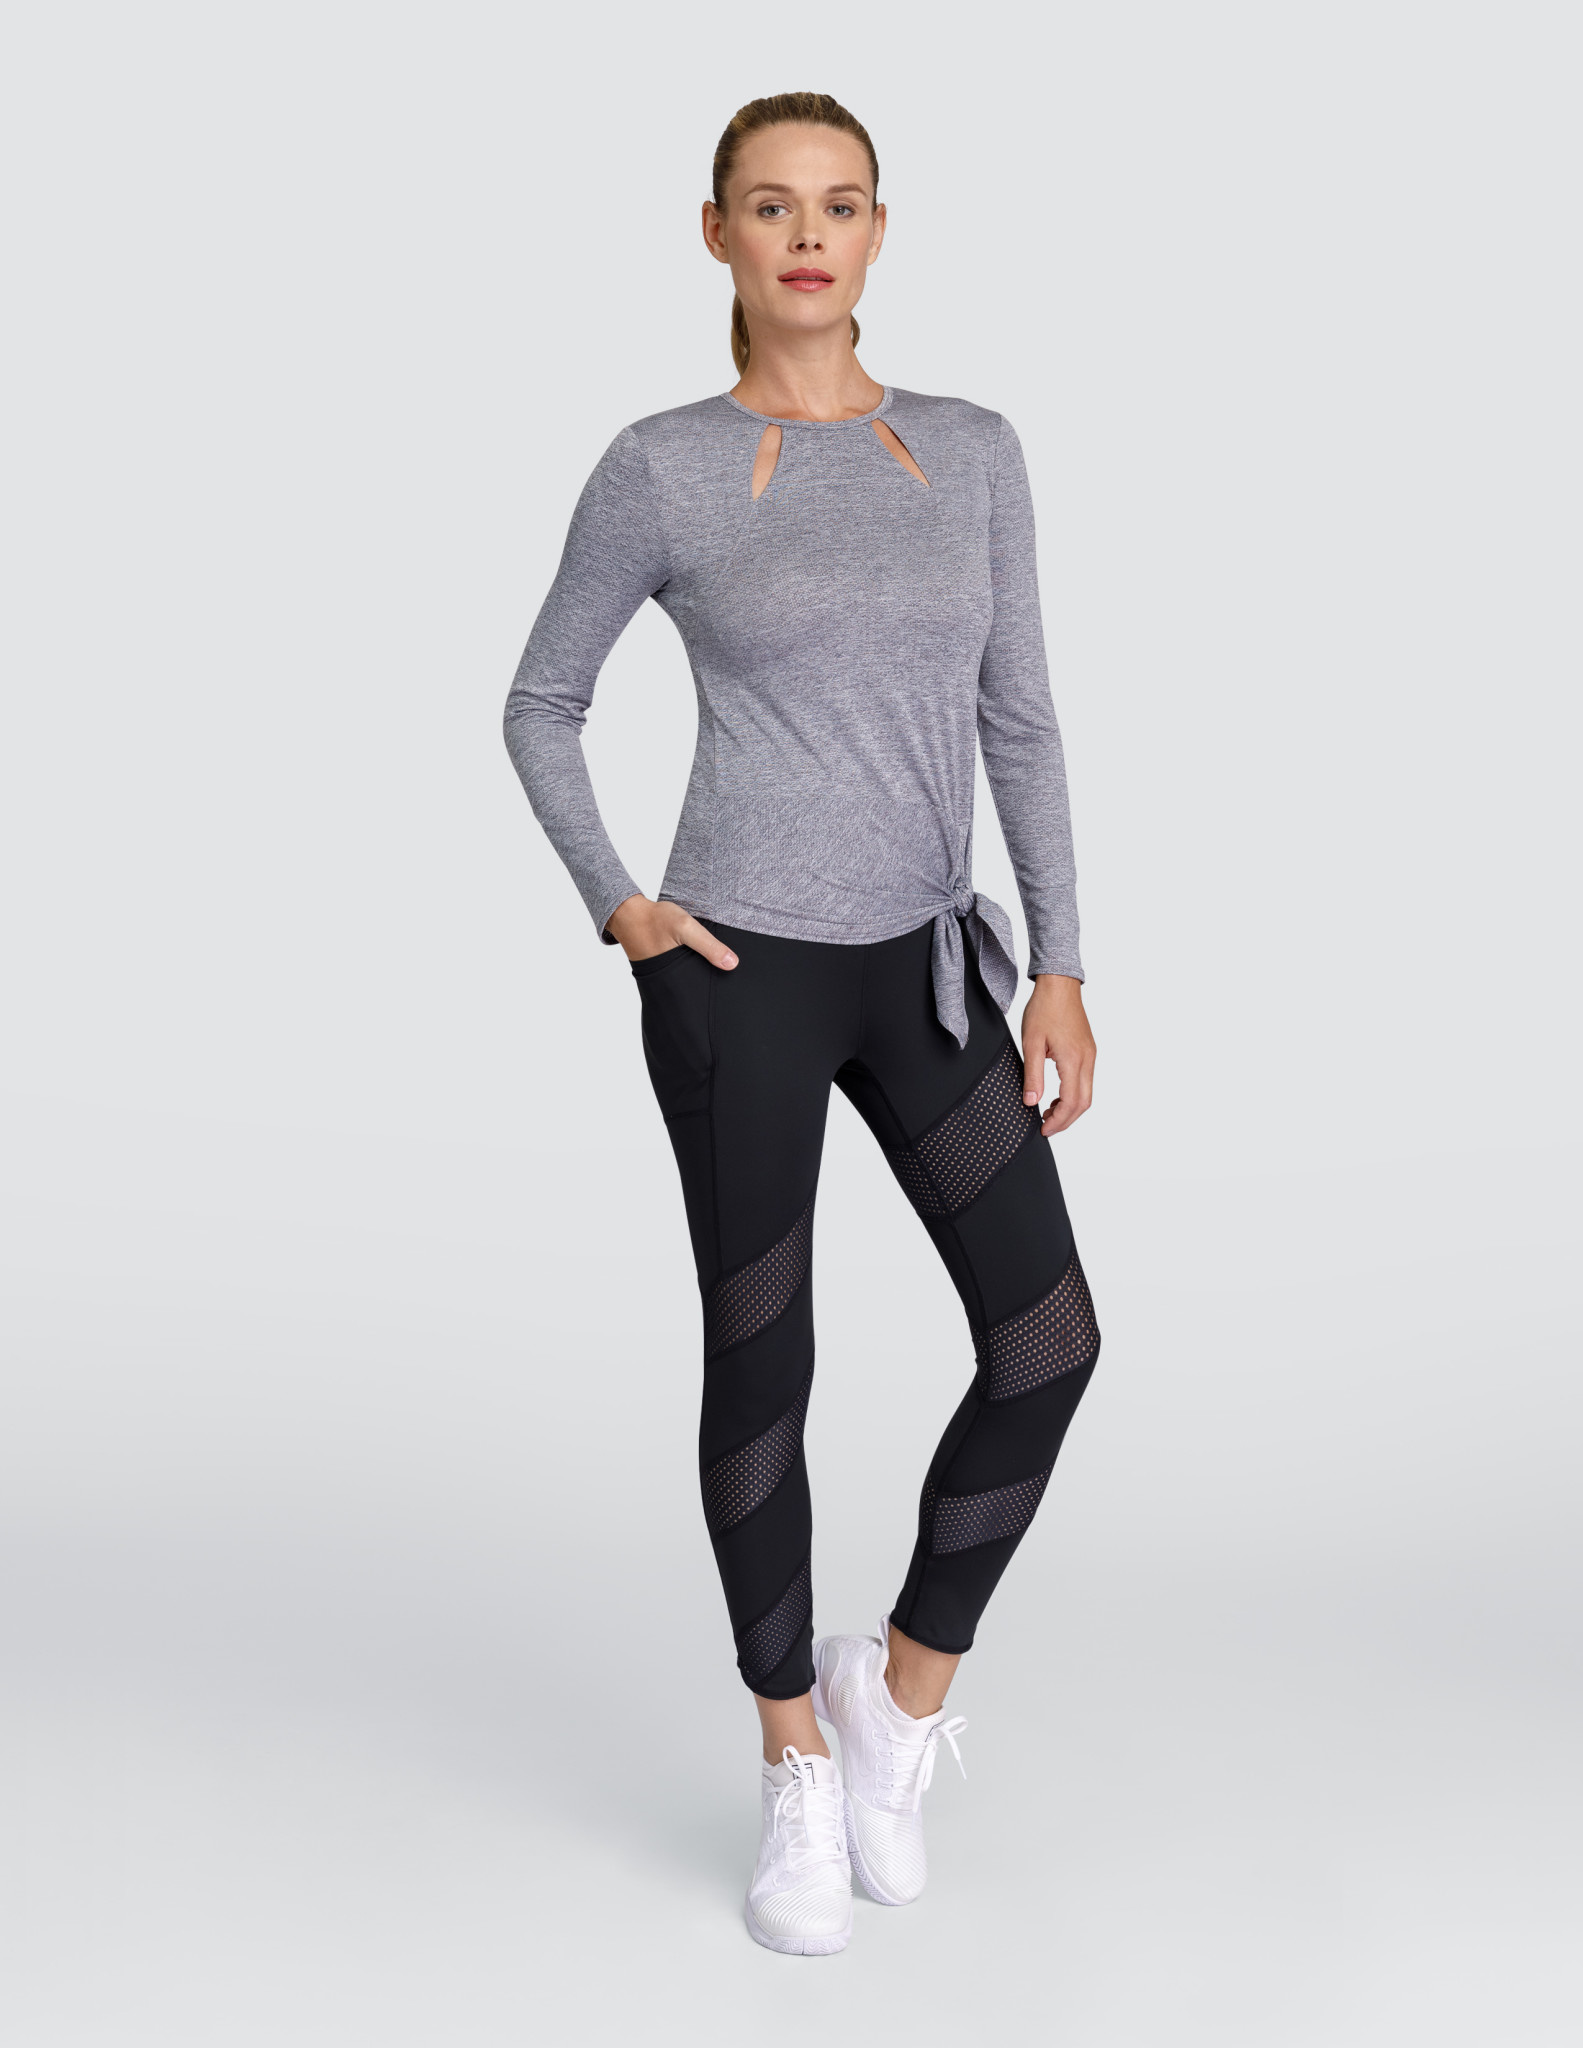 Tail Tennis Tail Julieta Top Frosted Heather